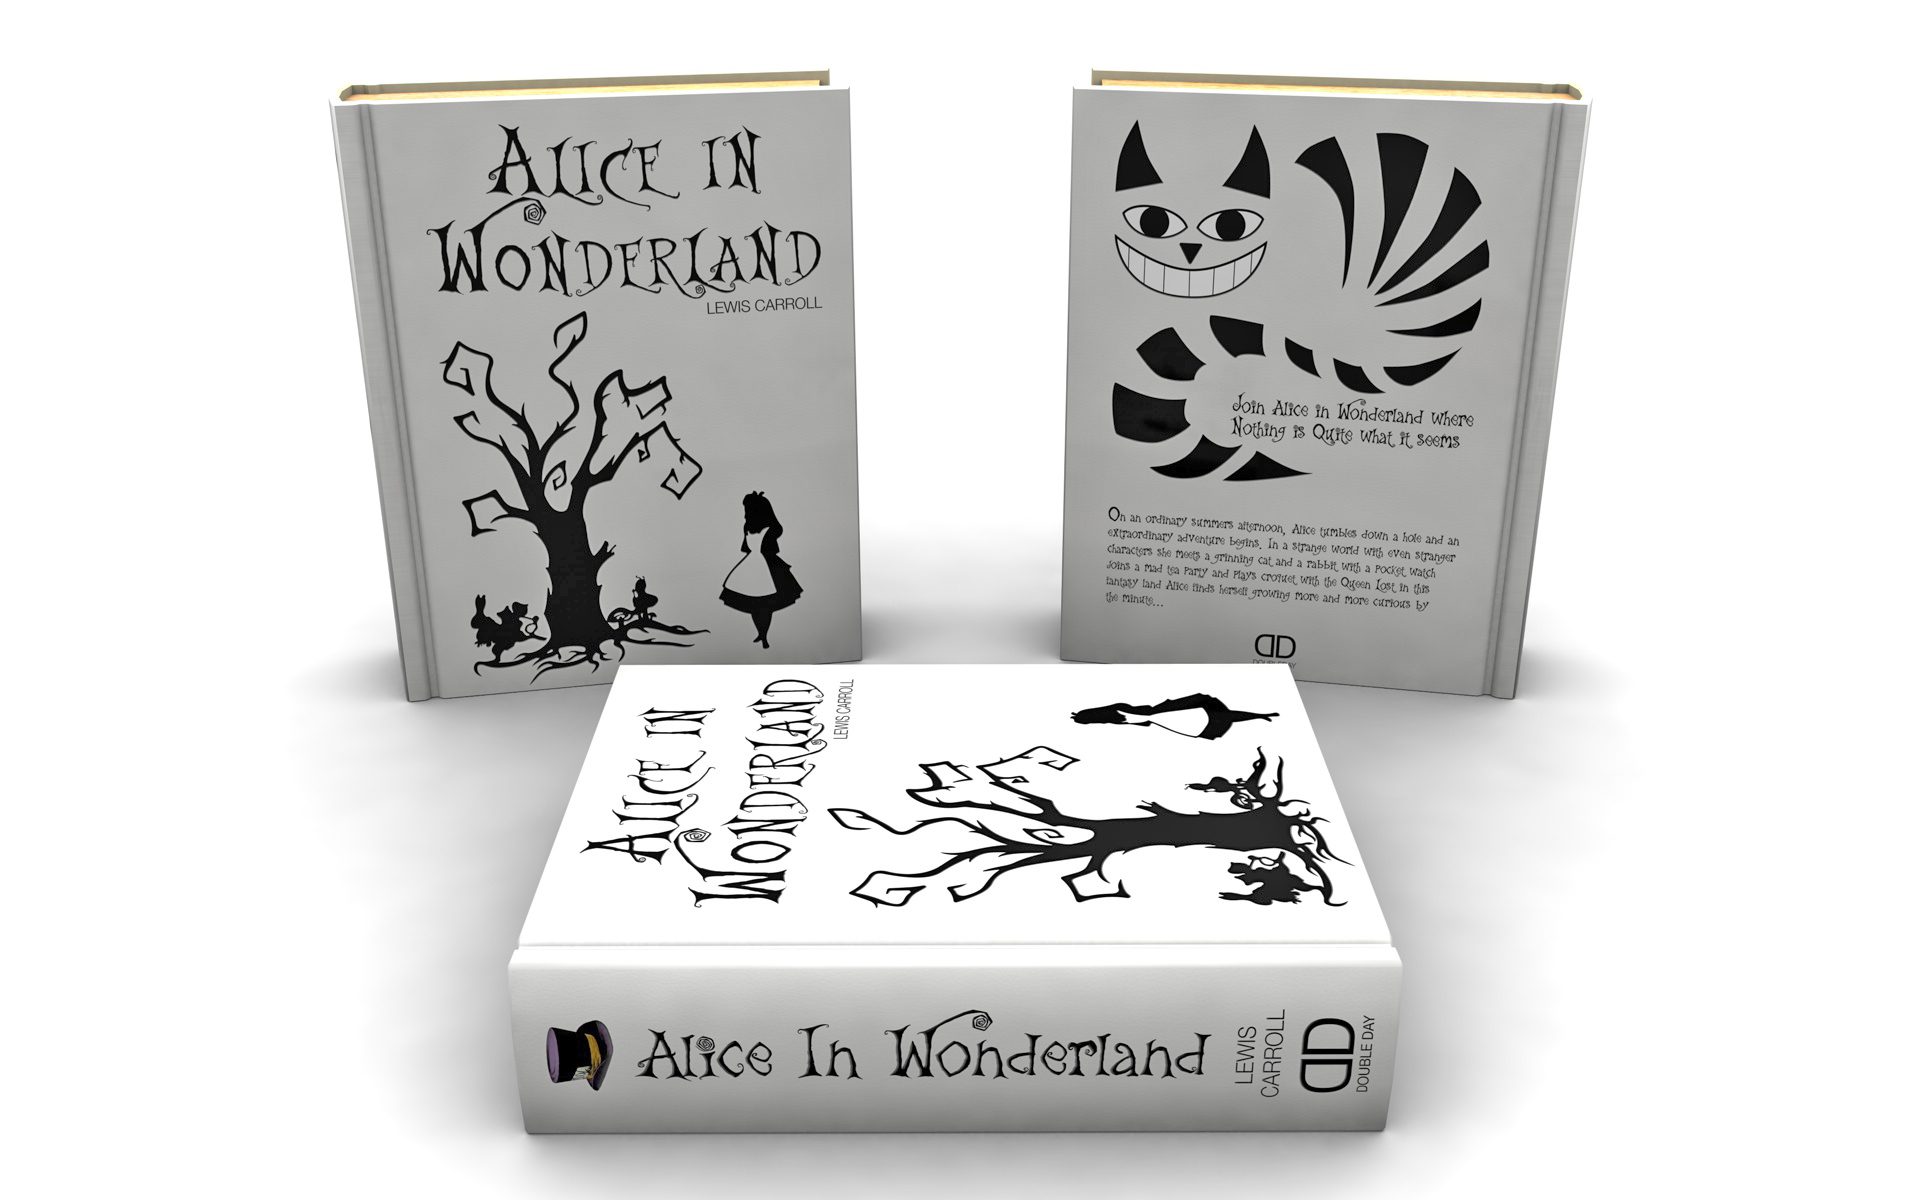 Alice In Wonderland Book Cover Ideas ~ Book cover the creative works of eric jussaume